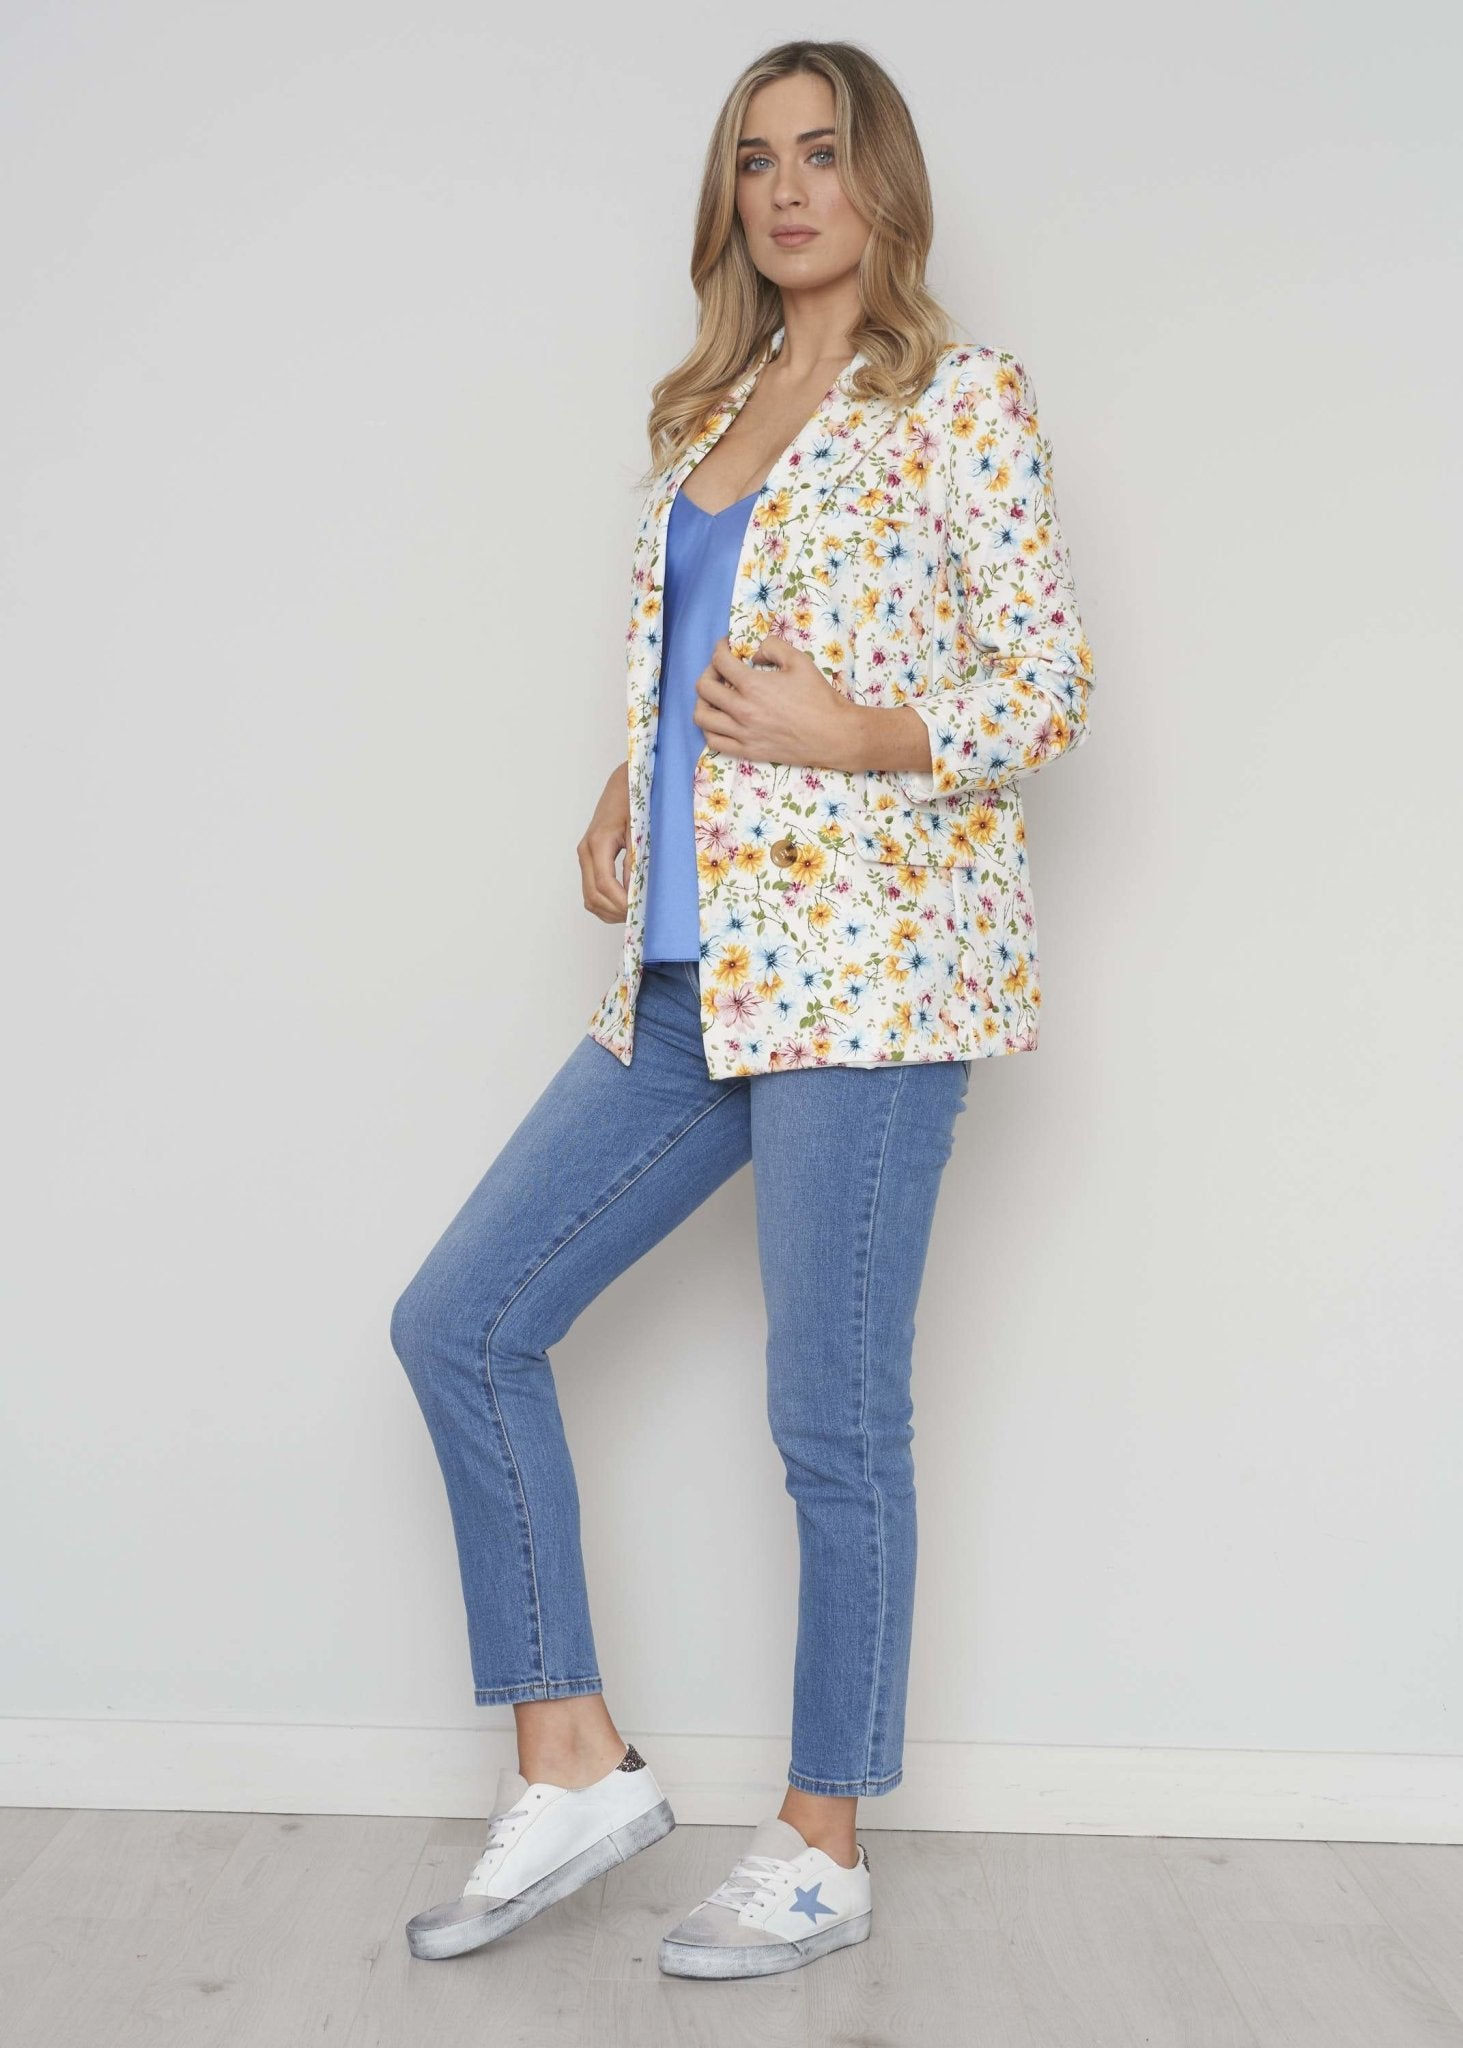 Elsa Floral Blazer In White Mix - The Walk in Wardrobe